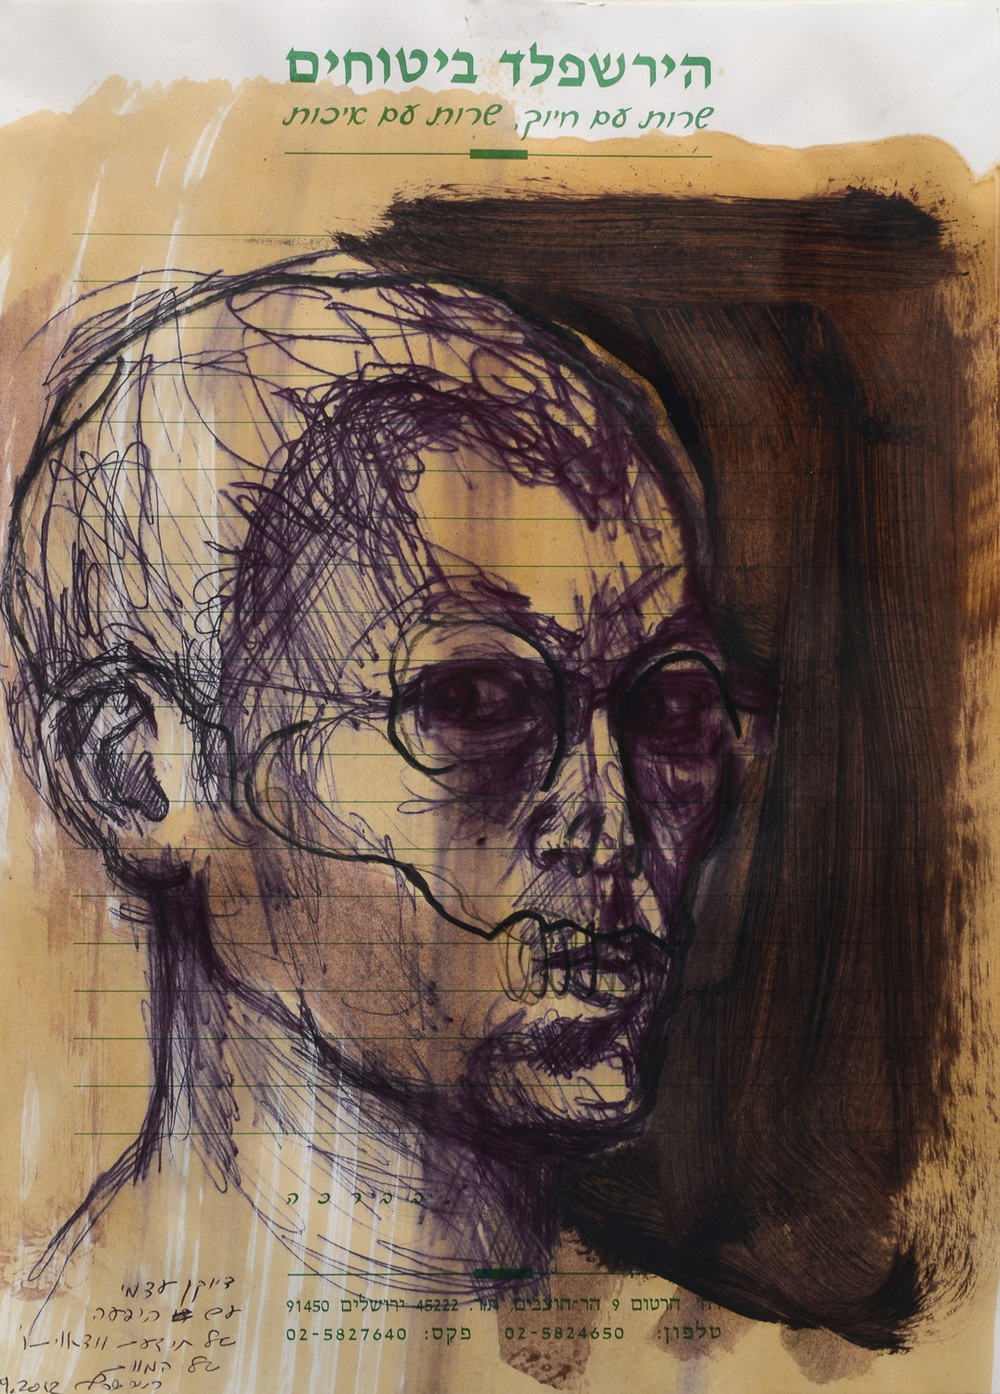 Self Portrait, Mixed media on paper, 21x29 cm, 2012